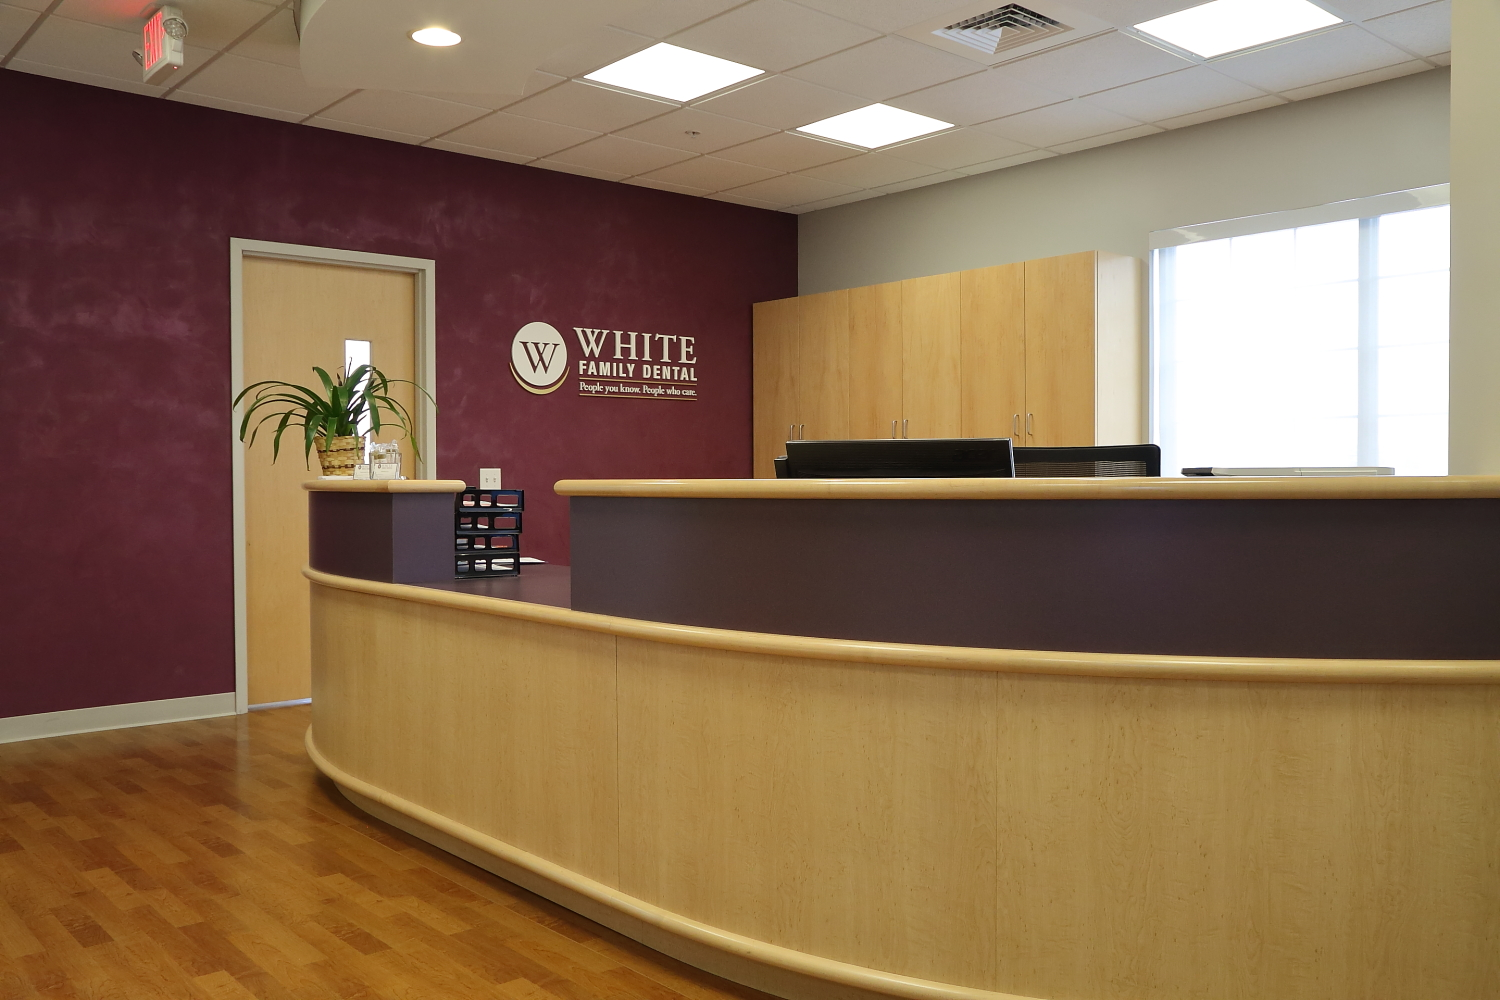 White Family Dental - Willow Valley